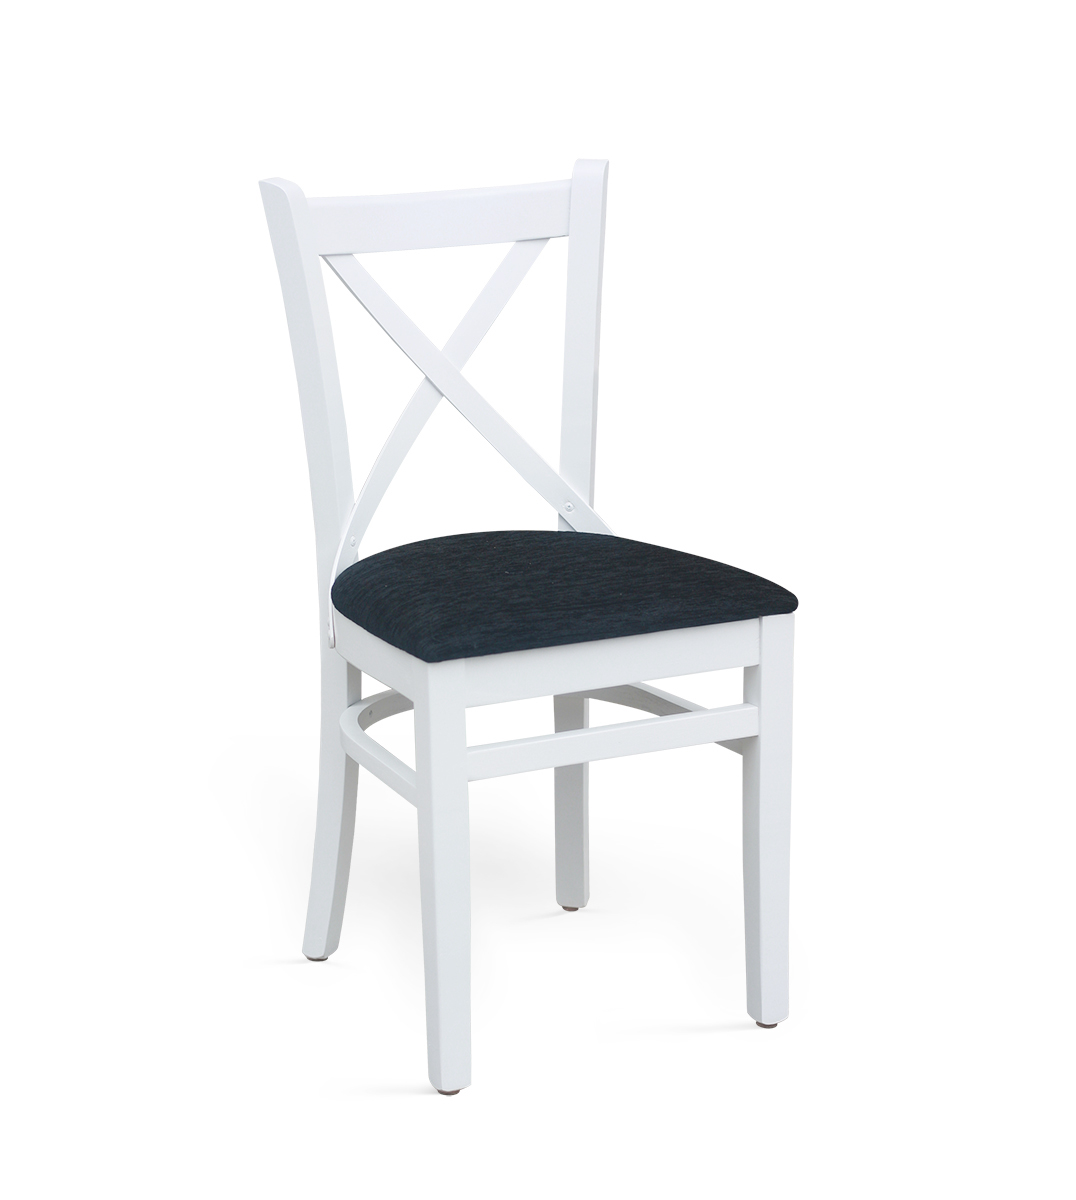 Chair  MD 470